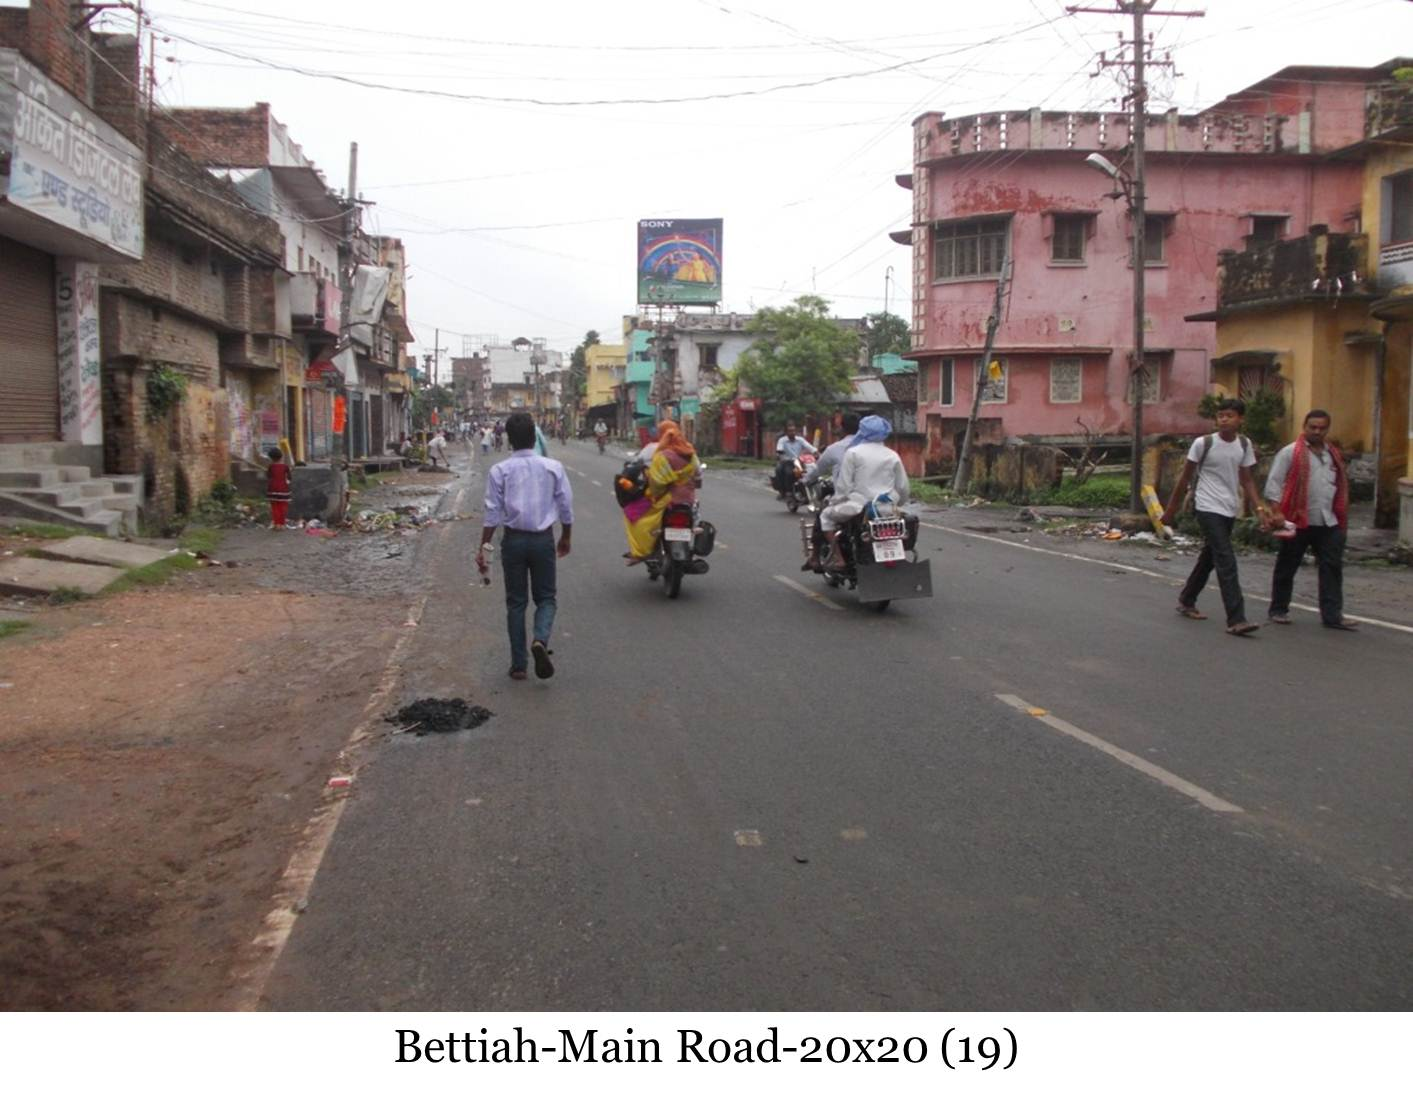 Main Rd, Bettiah